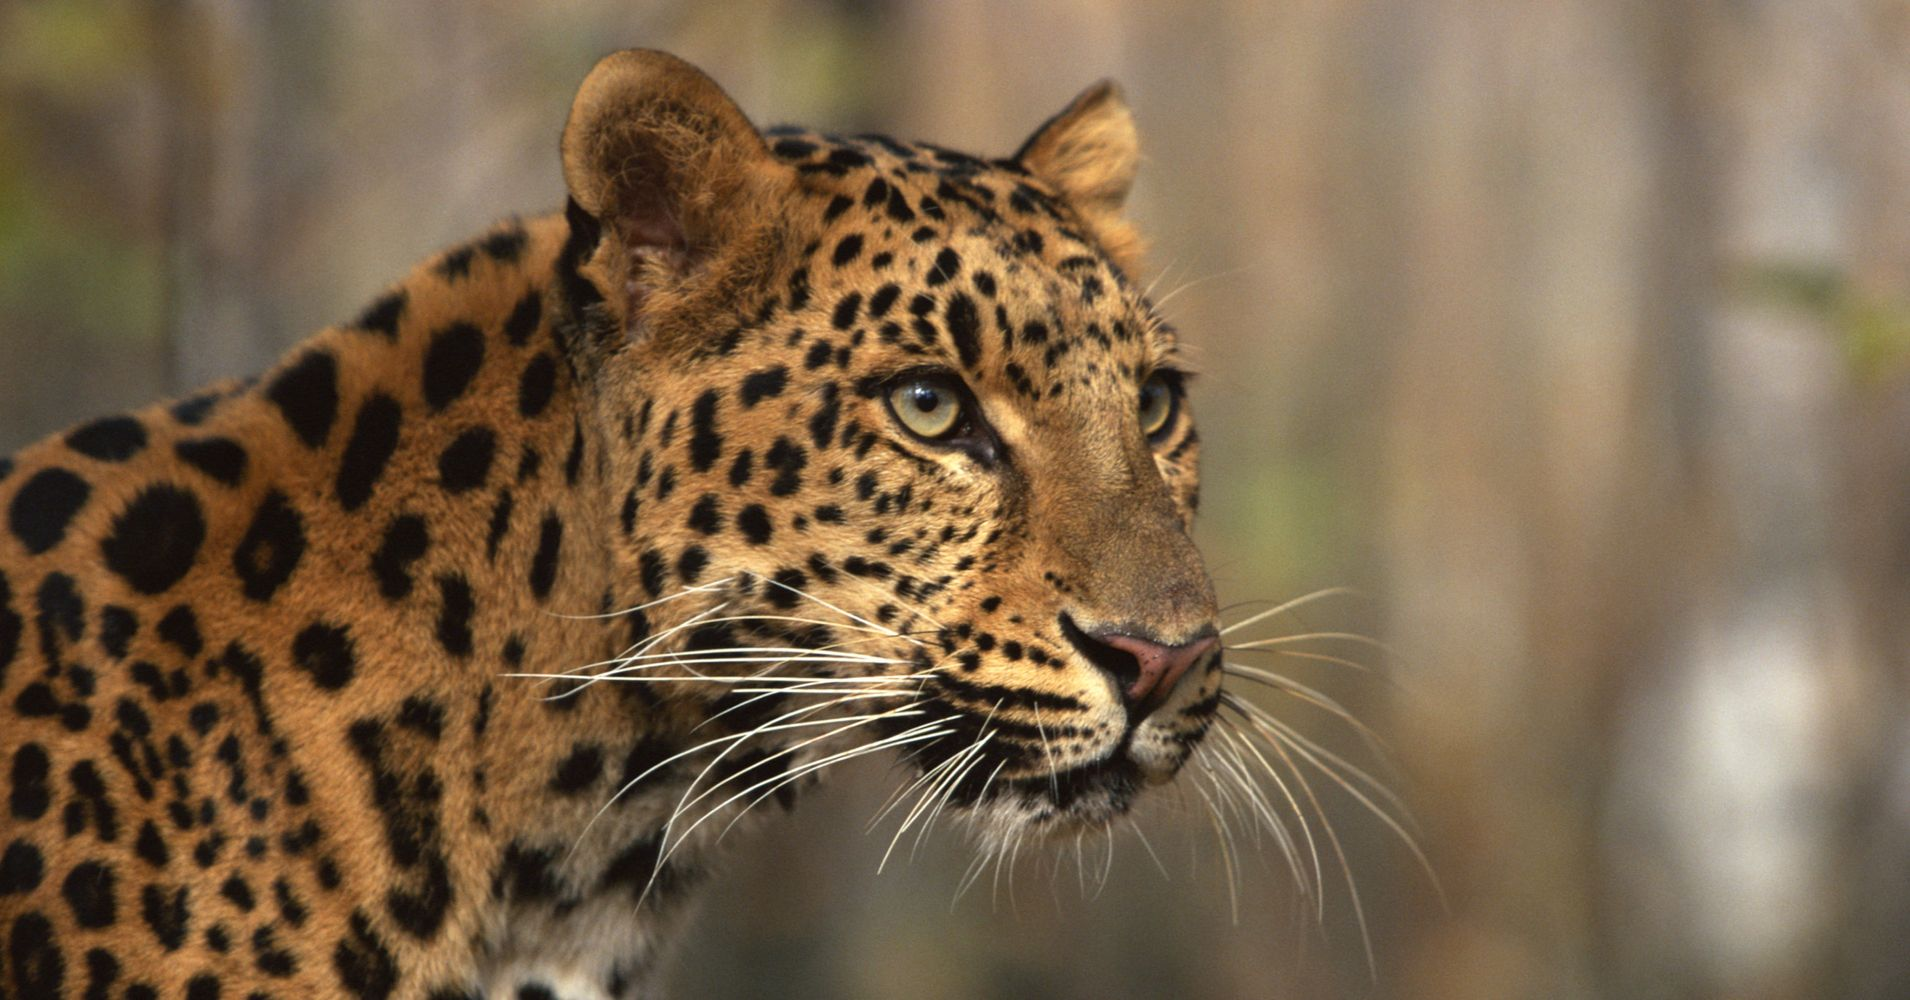 dating when you are shy memes: why is the amur leopard endangered yahoo dating